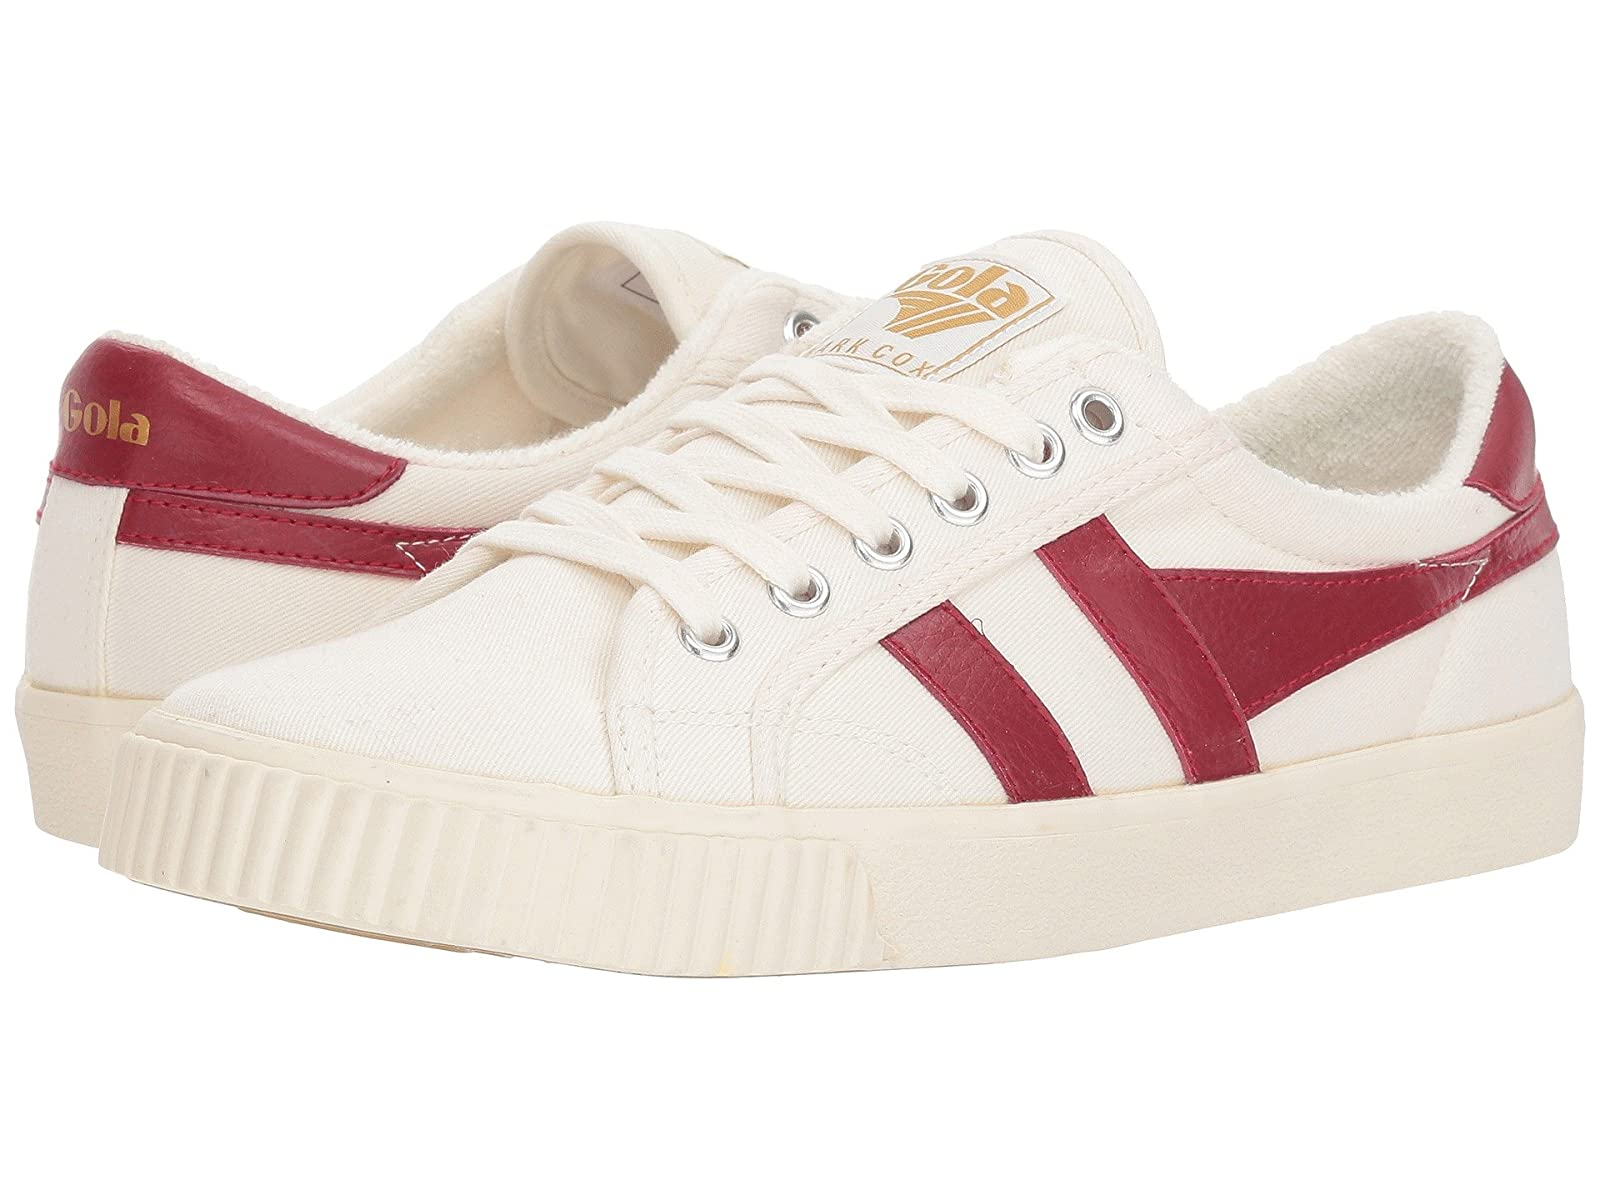 Gola Tennis - Mark CoxAtmospheric grades have affordable shoes